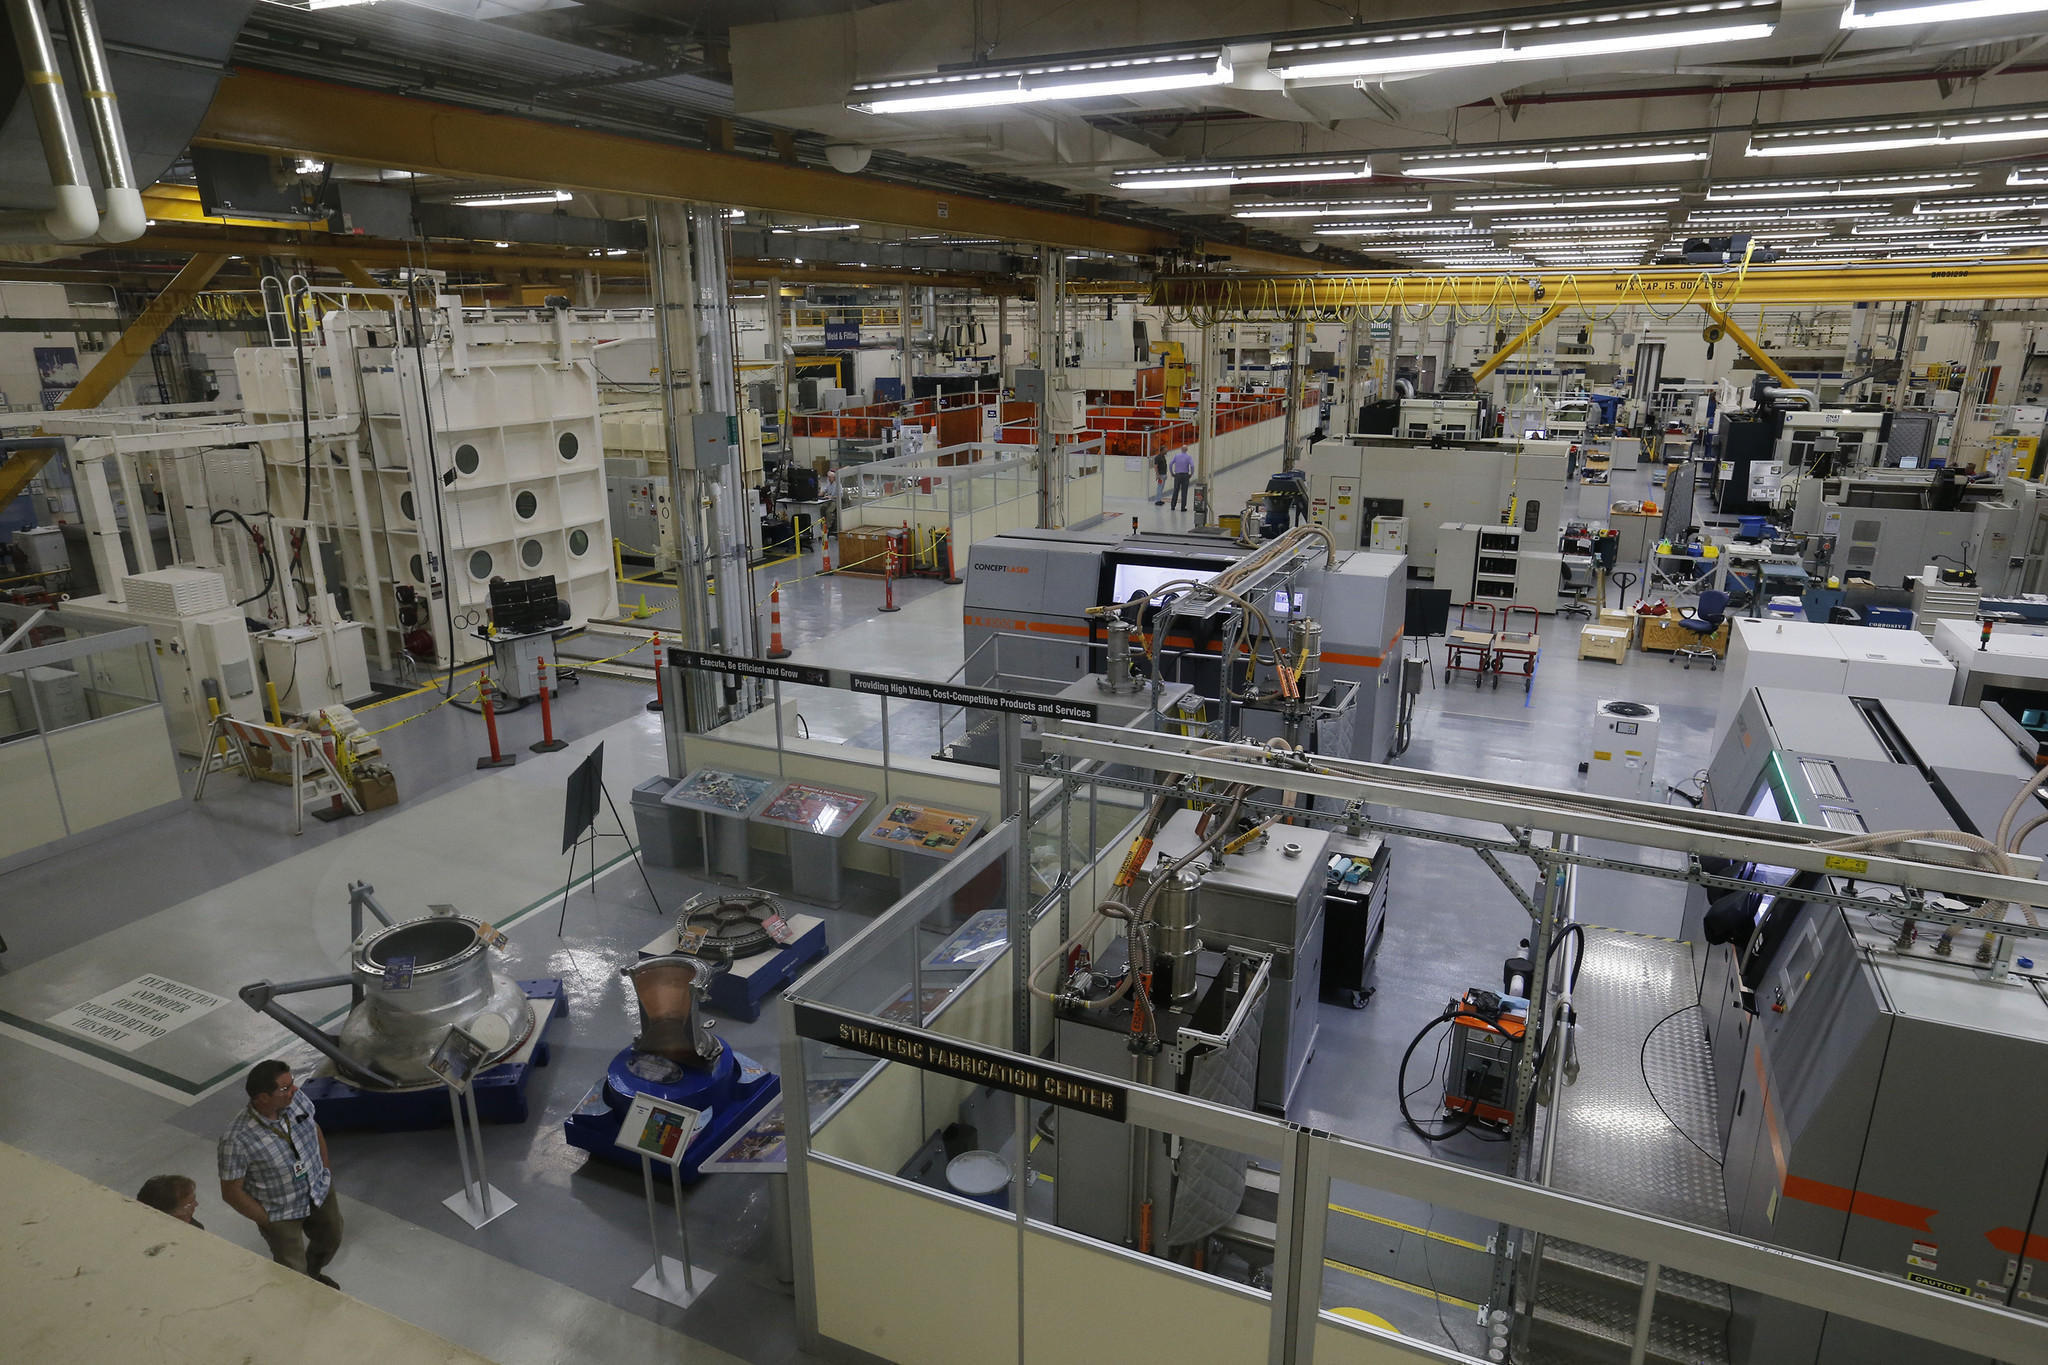 Aerojet Rocketdyne's manufacturing facility in California. Photo via Allen J. Schaben/Los Angeles Times.